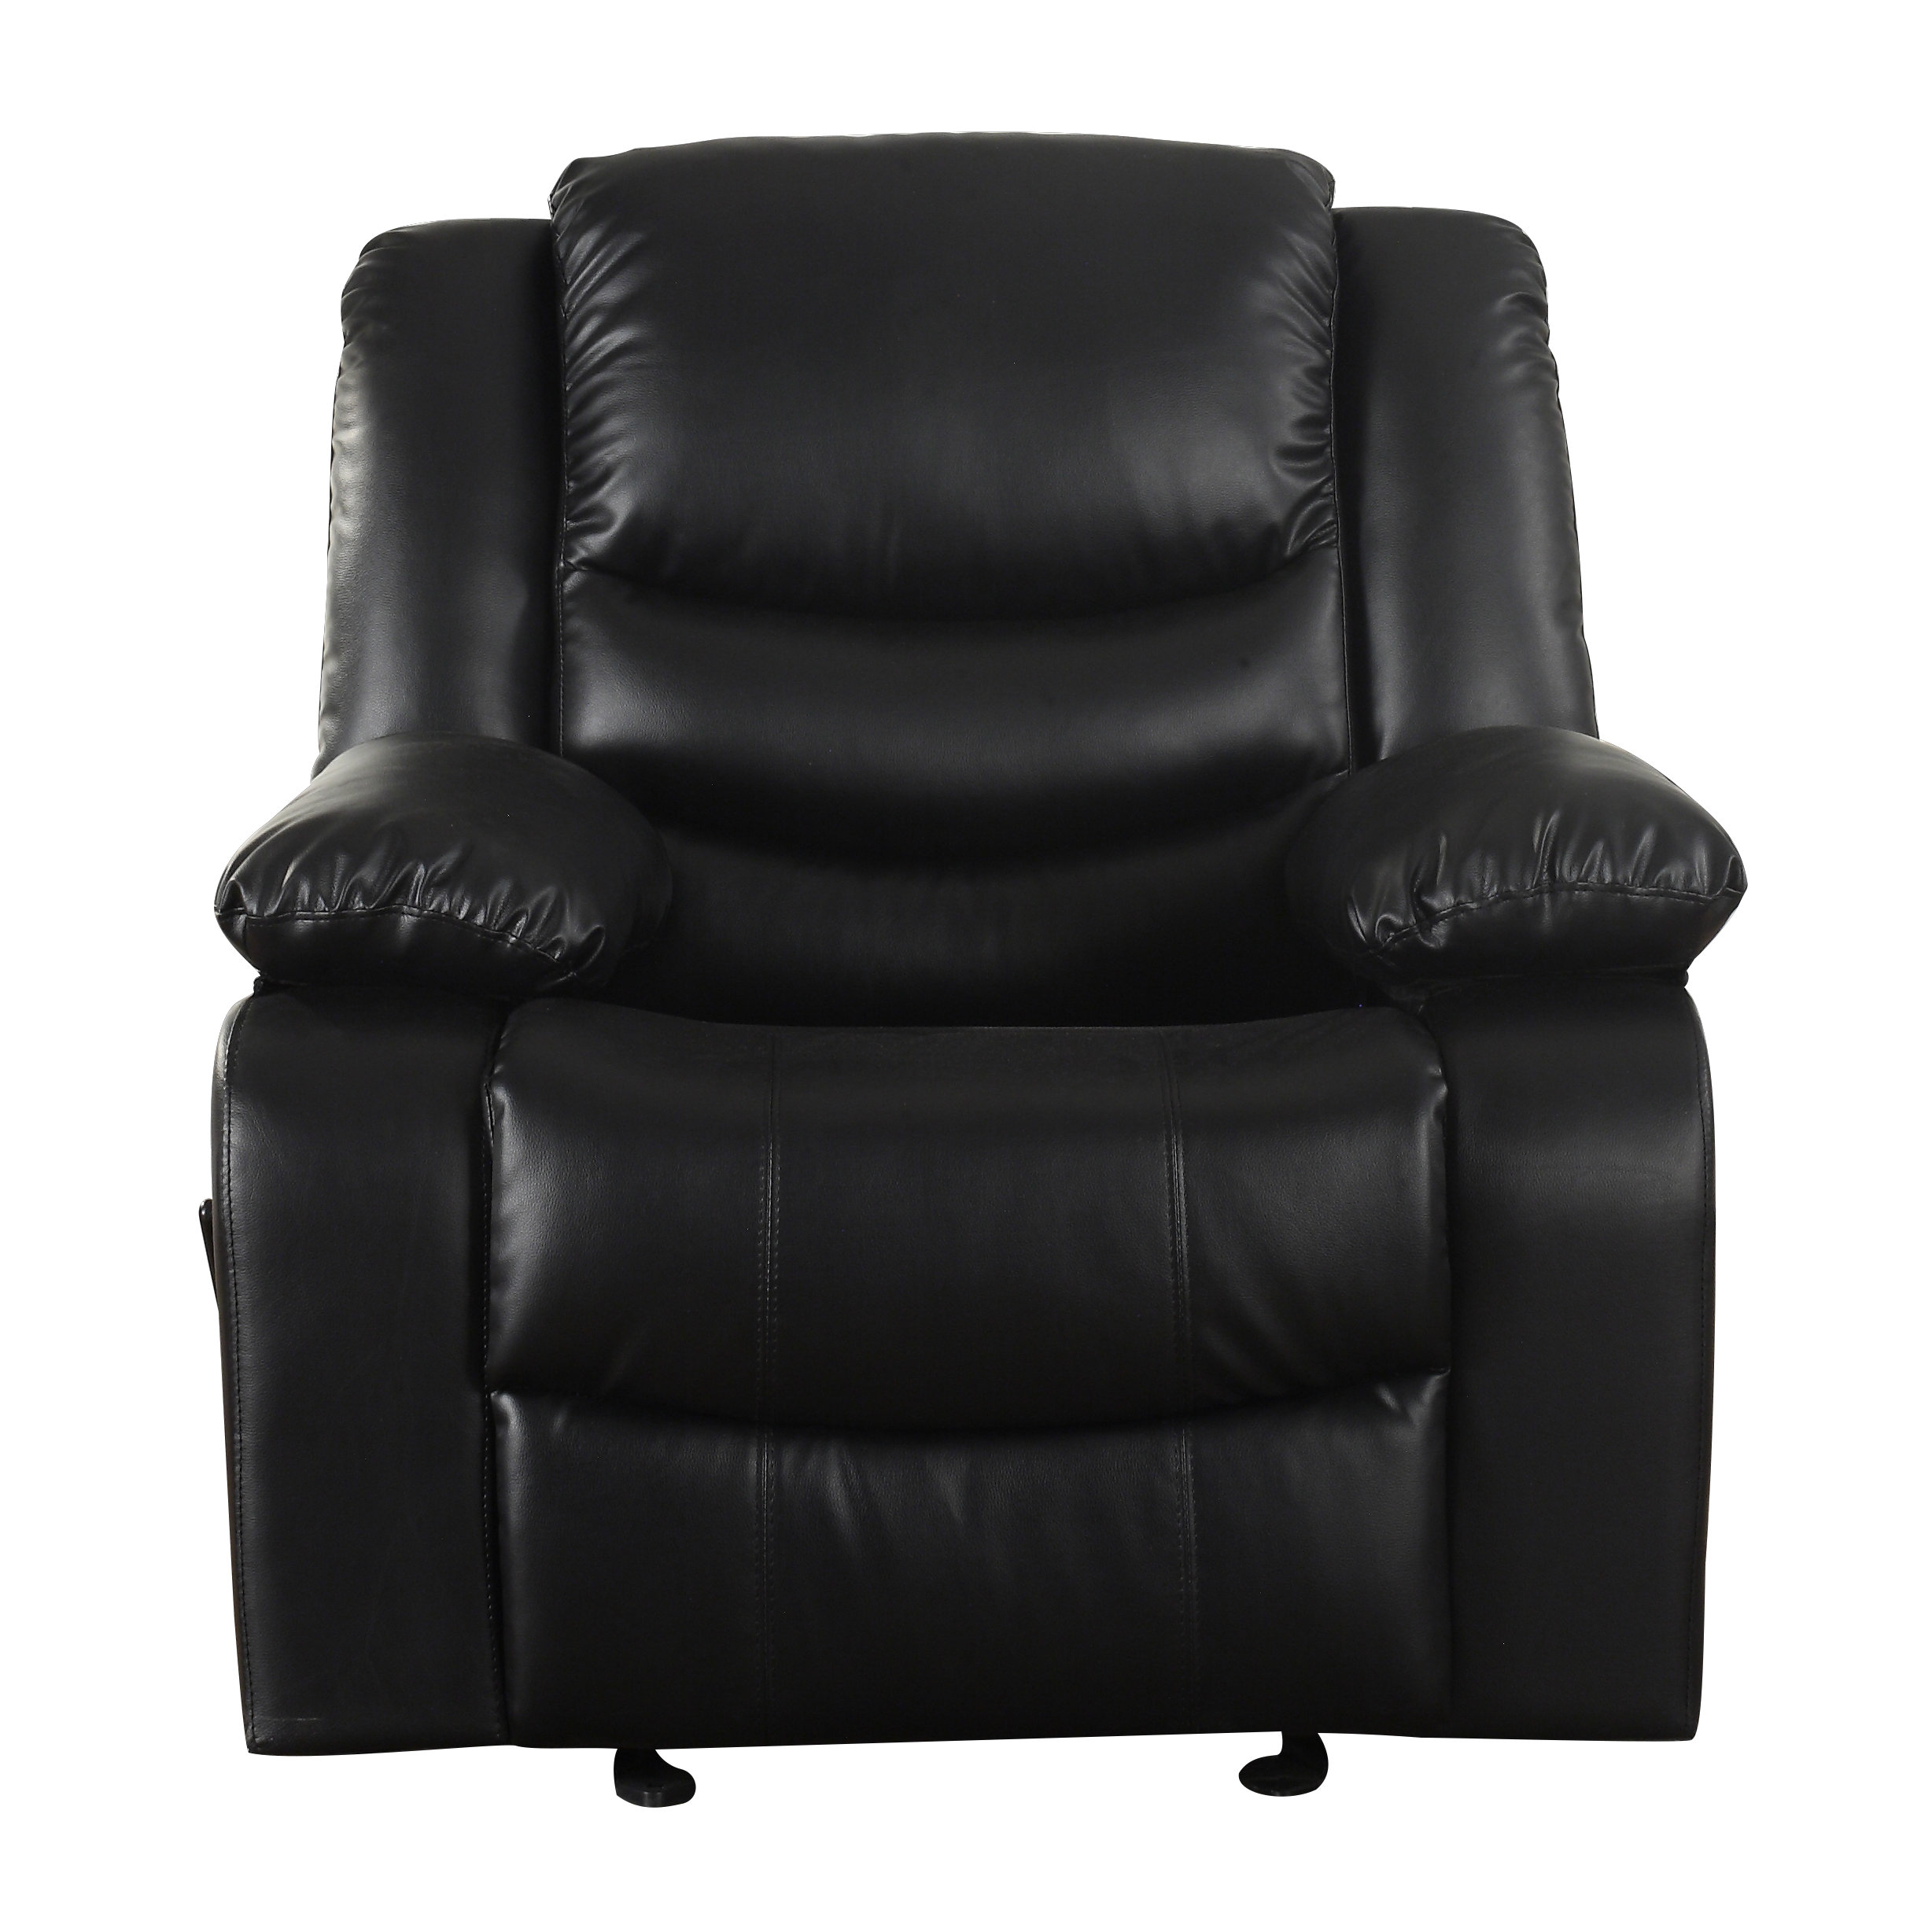 Madison Home Usa Classic Overstuffed Manual Rocker Recliner With Regard To Dale Iii Polyurethane Swivel Glider Recliners (Photo 13 of 20)